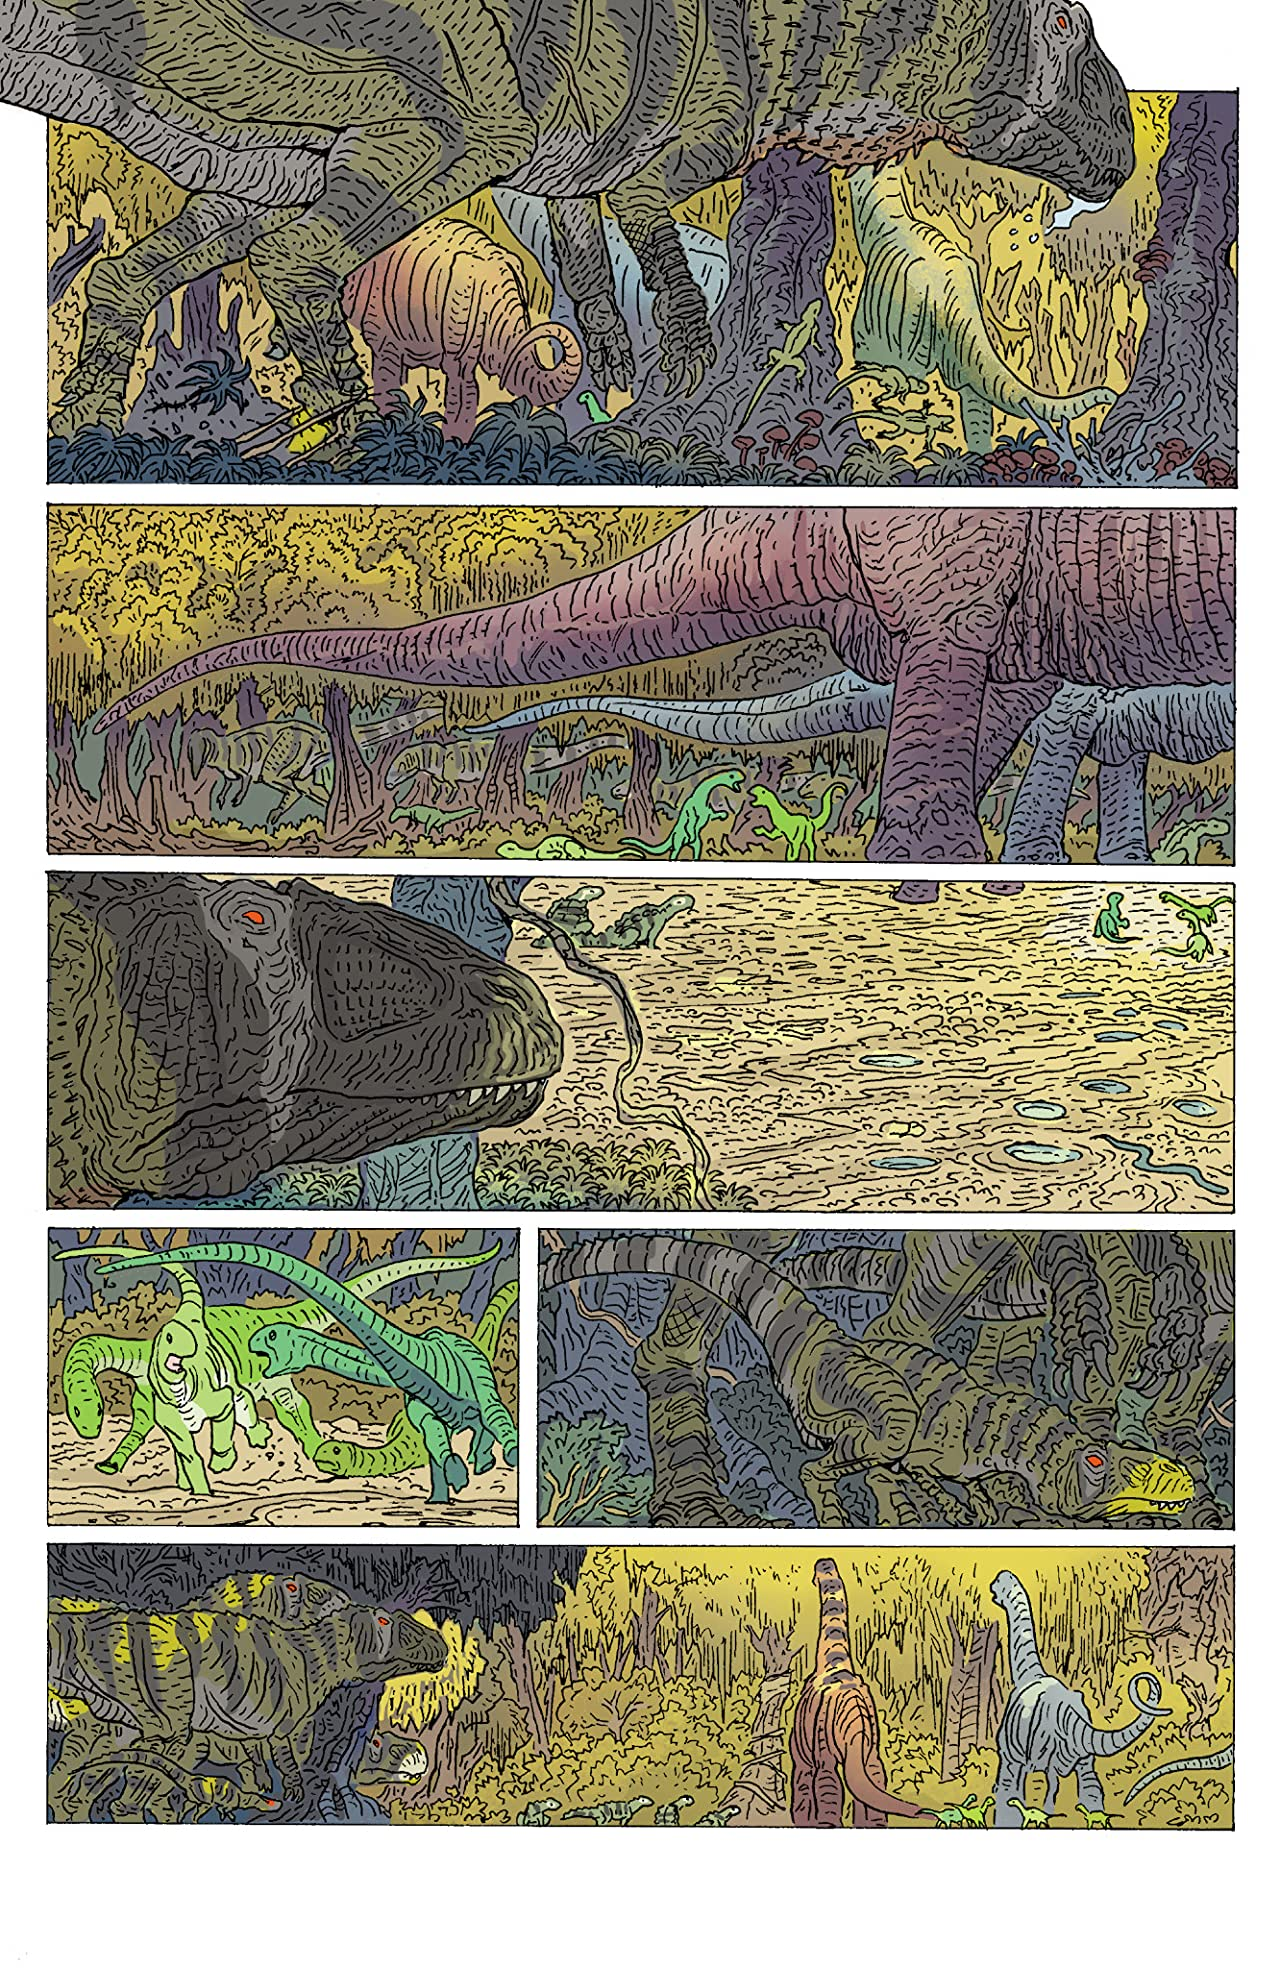 Age of Reptiles #2